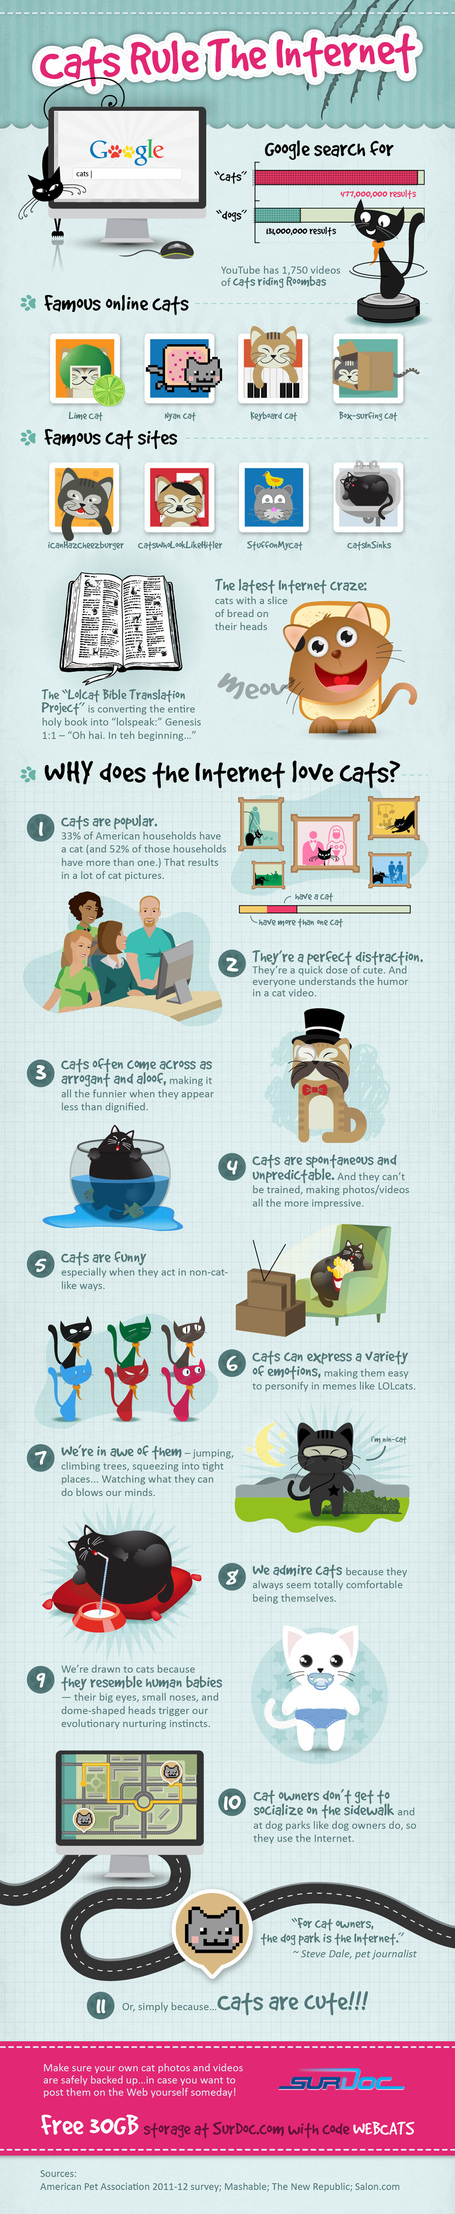 How Cats Rule the Web [INFOGRAPHIC] | MarketingHits | Scoop.it